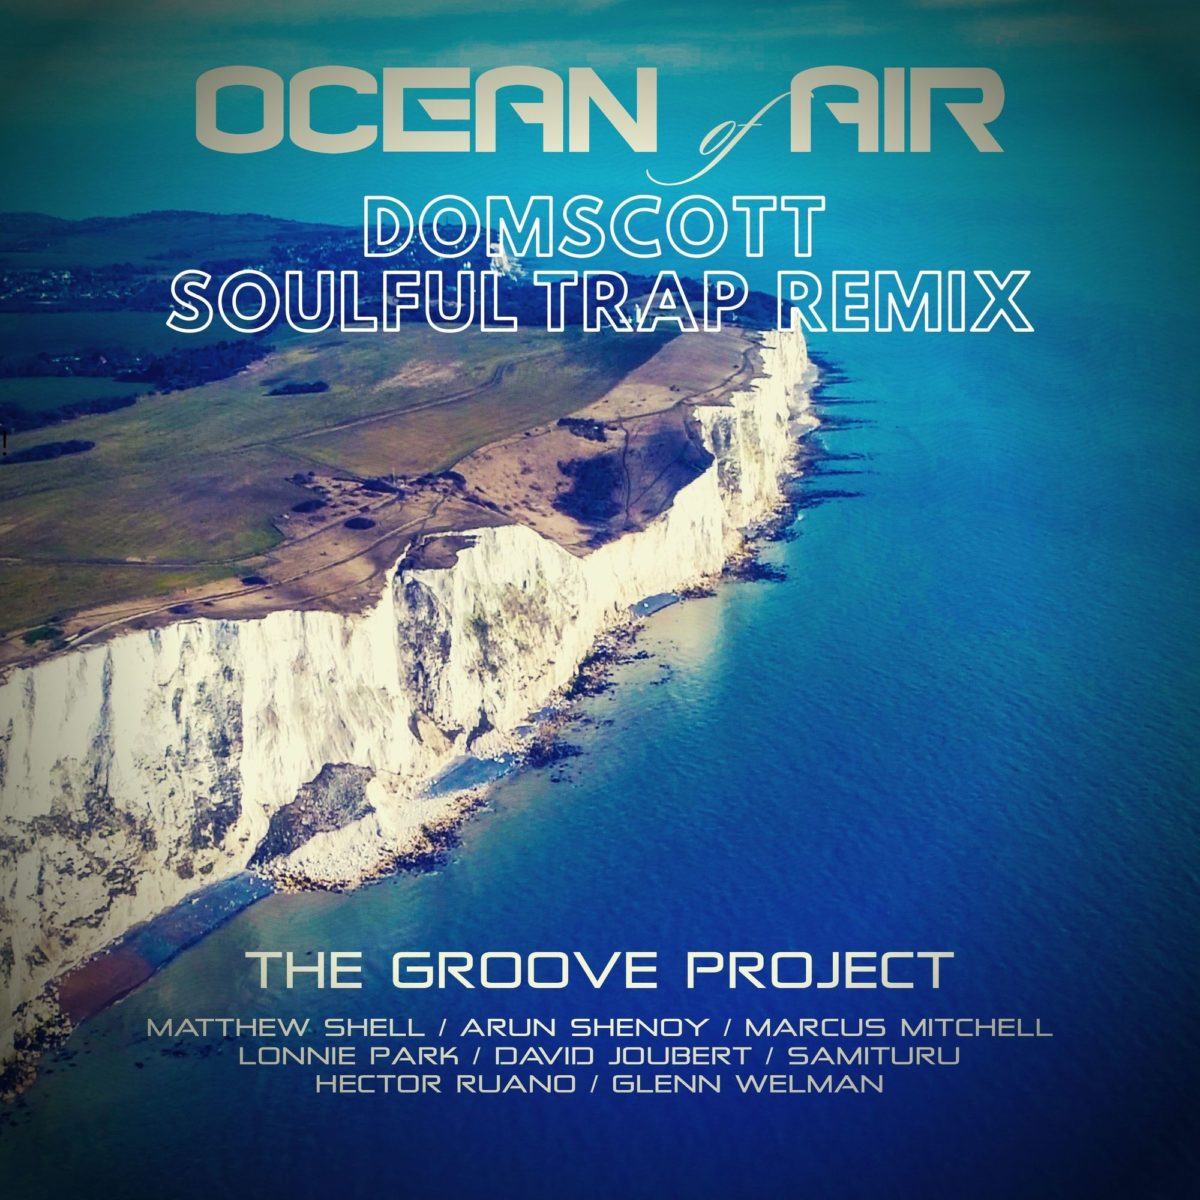 Ocean of Air - Domscott Soulful Trap Remix Front Cover Art 2000px